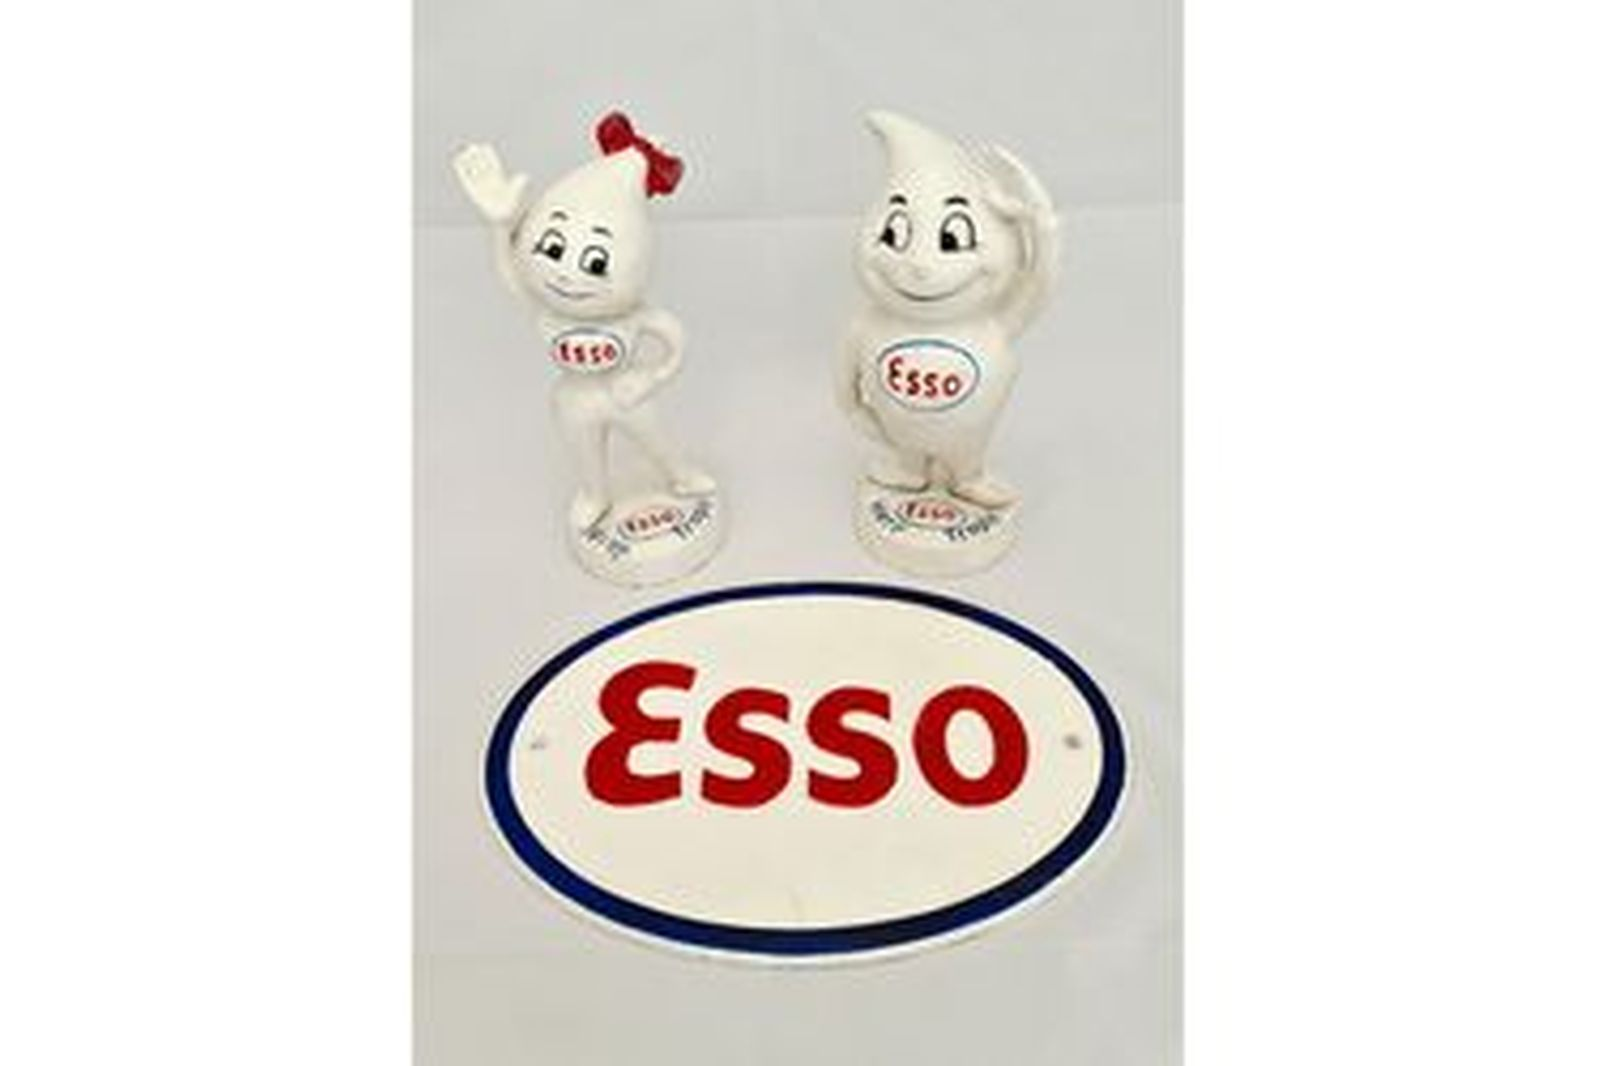 Mr & Mrs Esso Drip Head & Sign (Reproduction) 240mm (H) x 330mm (W)